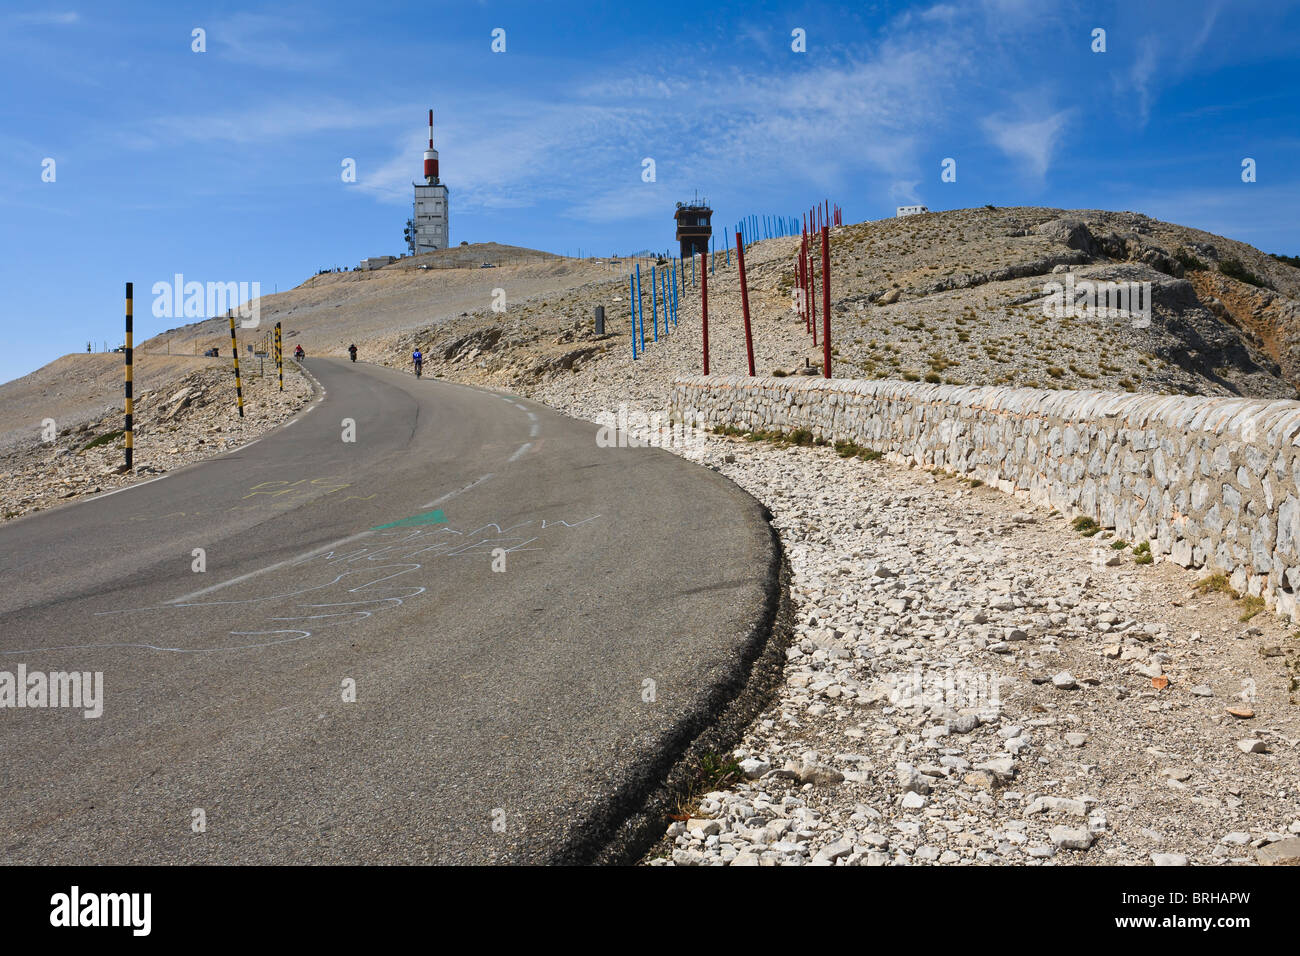 The summit of Mont Ventoux, Bédoin, France - Stock Image